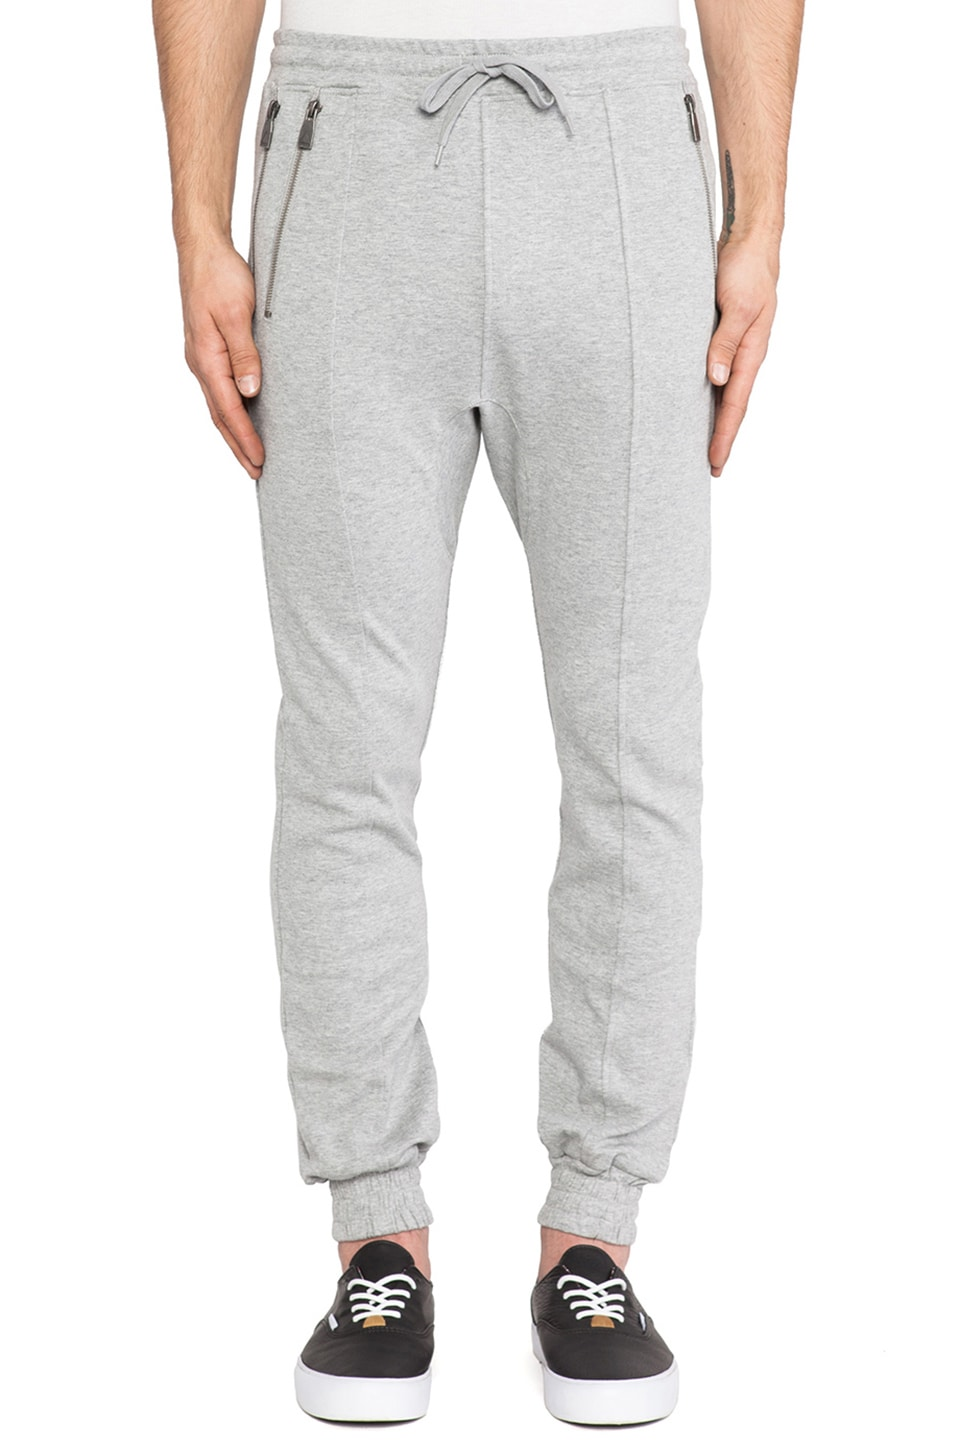 Eleven Paris Silex Sweatpant in Grey